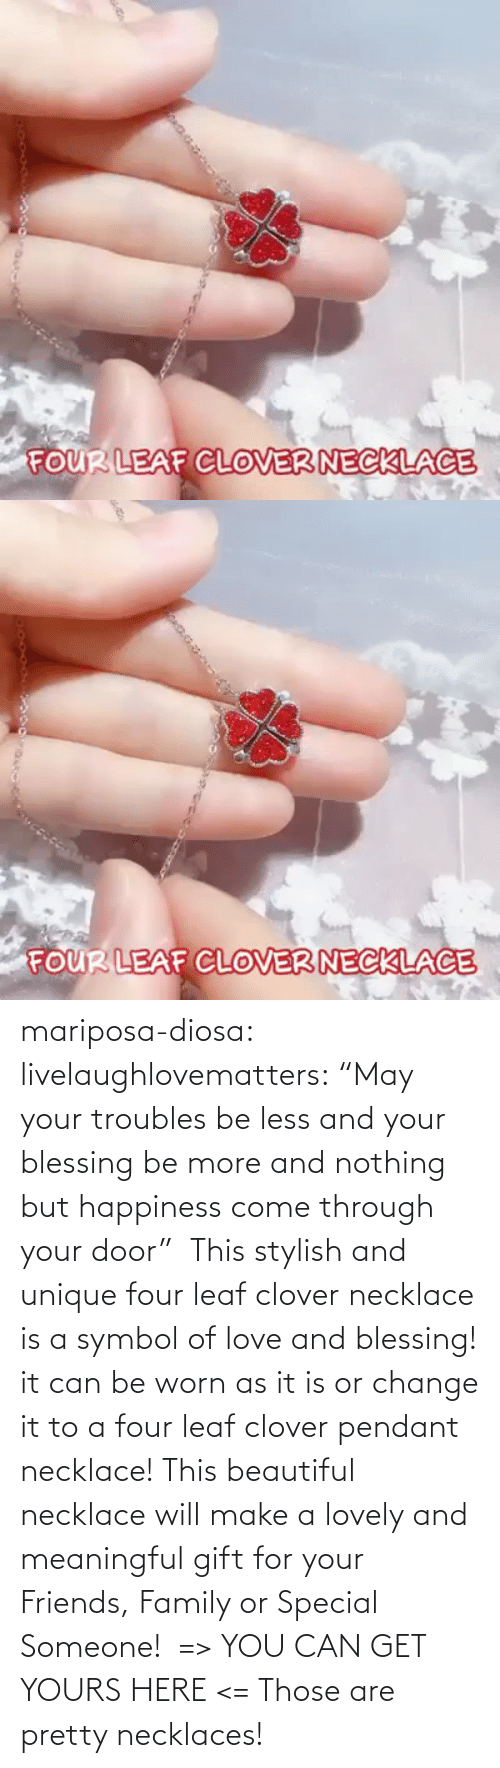 "pendant: mariposa-diosa: livelaughlovematters:  ""May your troubles be less and your blessing be more and nothing but happiness come through your door""  This stylish and unique four leaf clover necklace is a symbol of love and blessing! it can be worn as it is or change it to a four leaf clover pendant necklace! This beautiful necklace will make a lovely and meaningful gift for your Friends, Family or Special Someone!  => YOU CAN GET YOURS HERE <=    Those are pretty necklaces!"